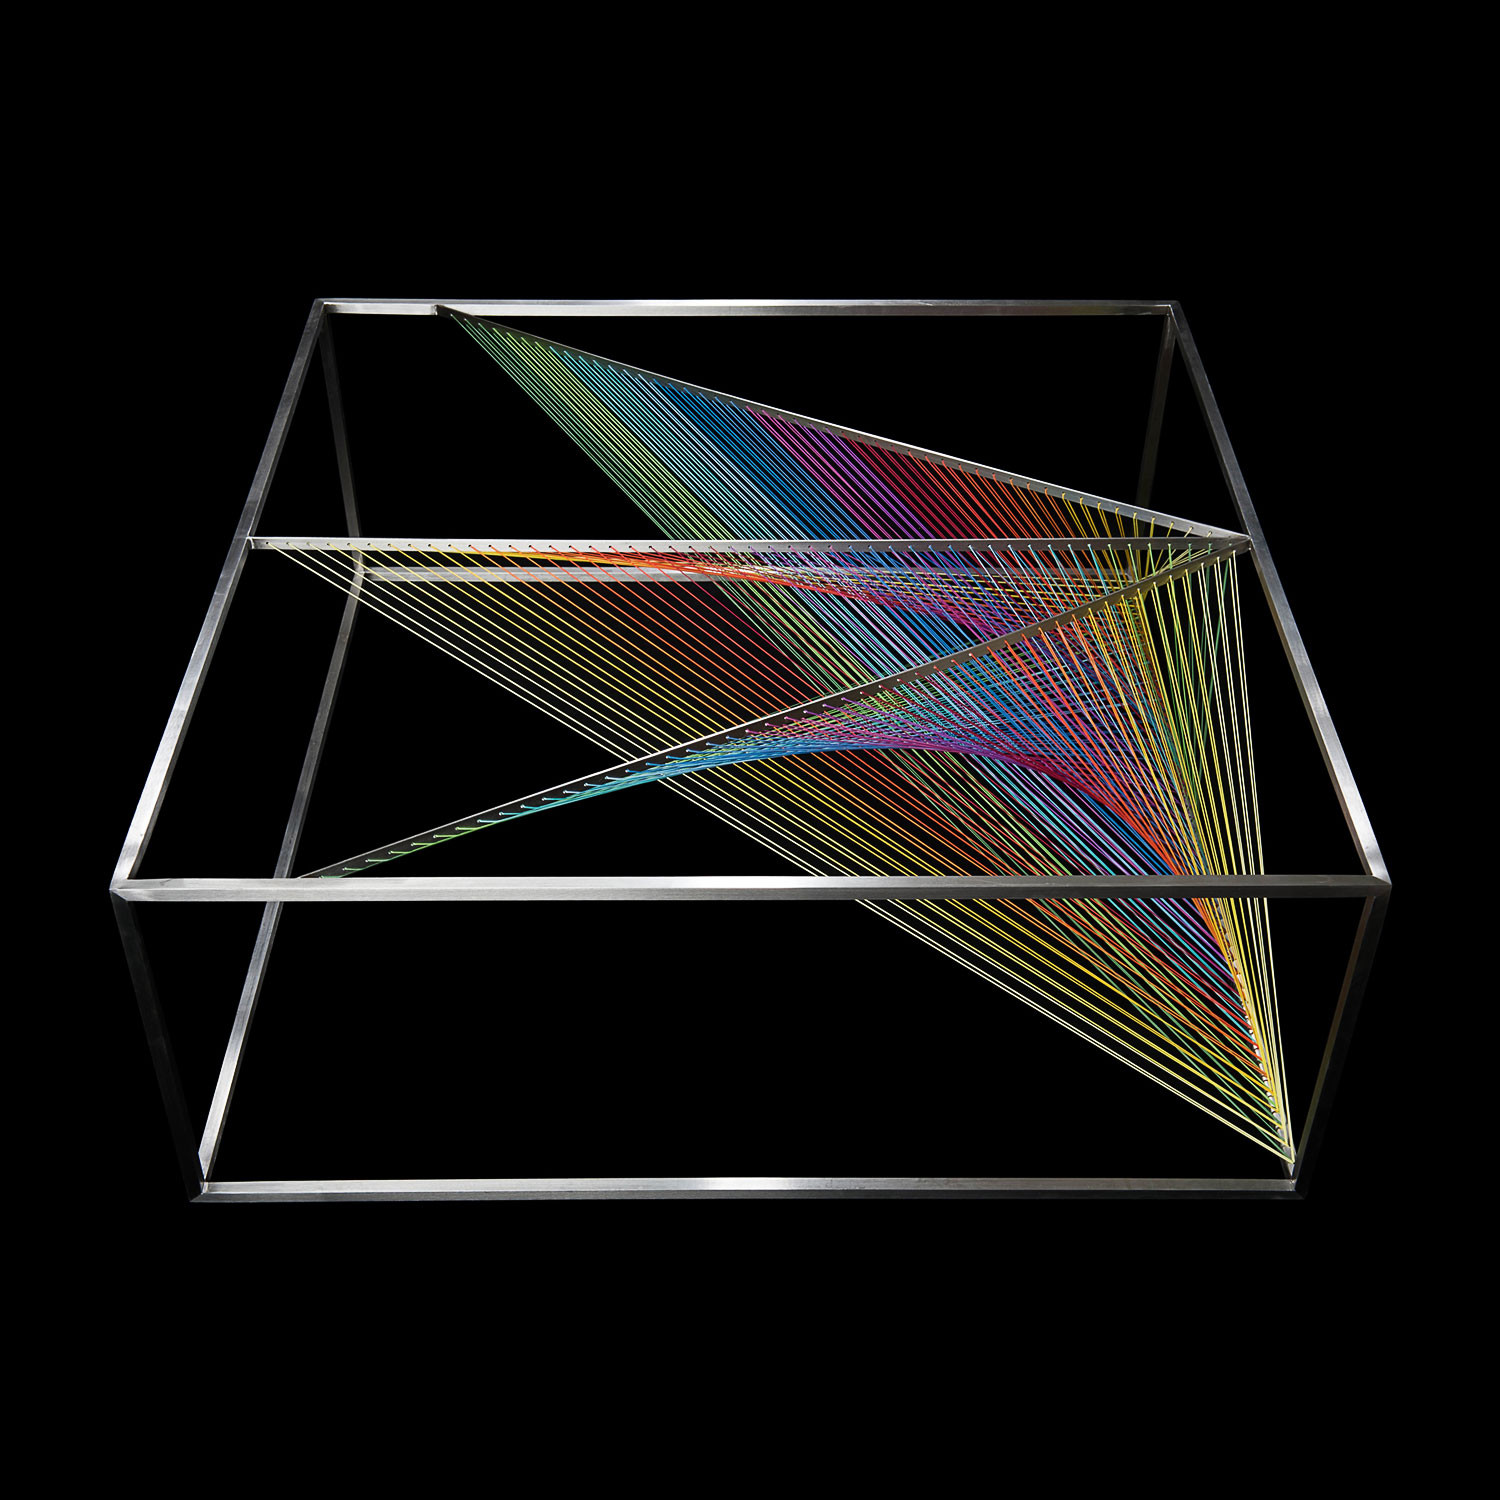 prism table mn design touch of modern glass prism table reflects dazzling rainbows my modern met